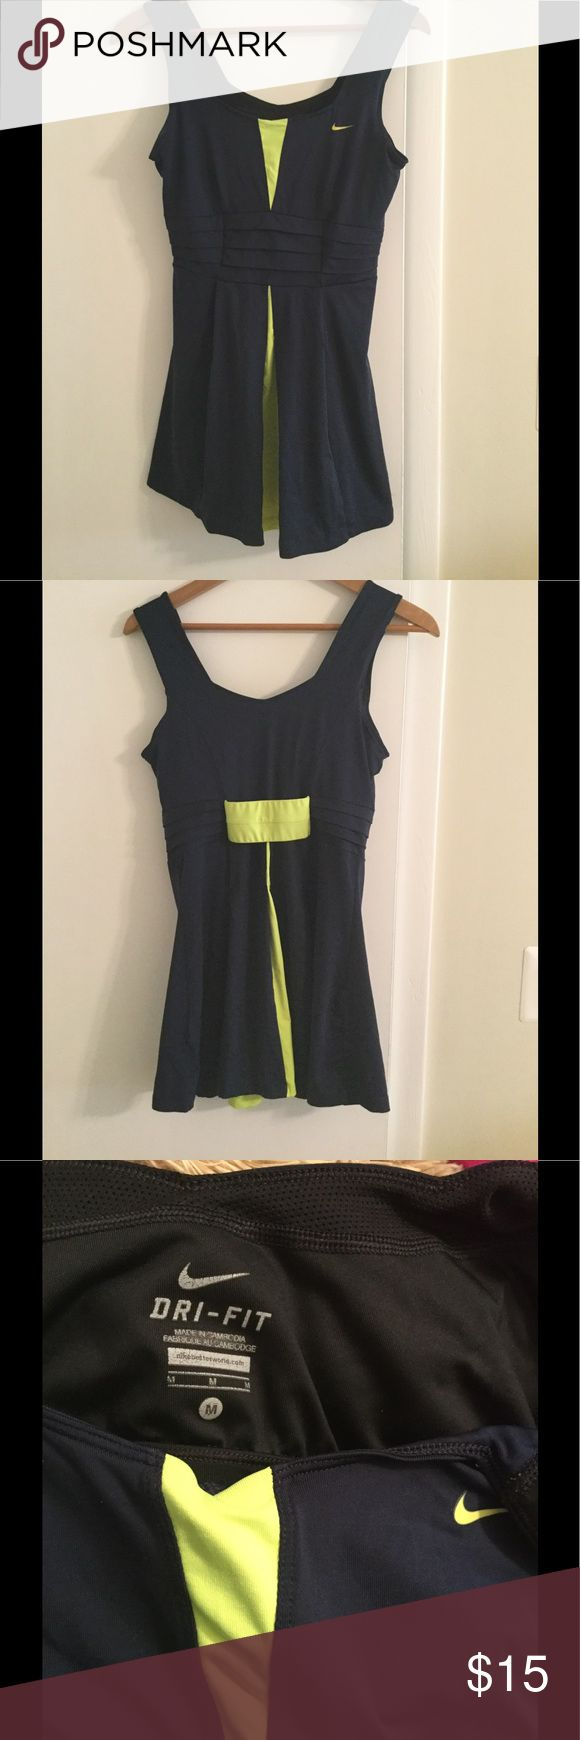 NIKE tennis dress size M Nike navy dress with lime contrast, very comfortable and good condition Nike Dresses